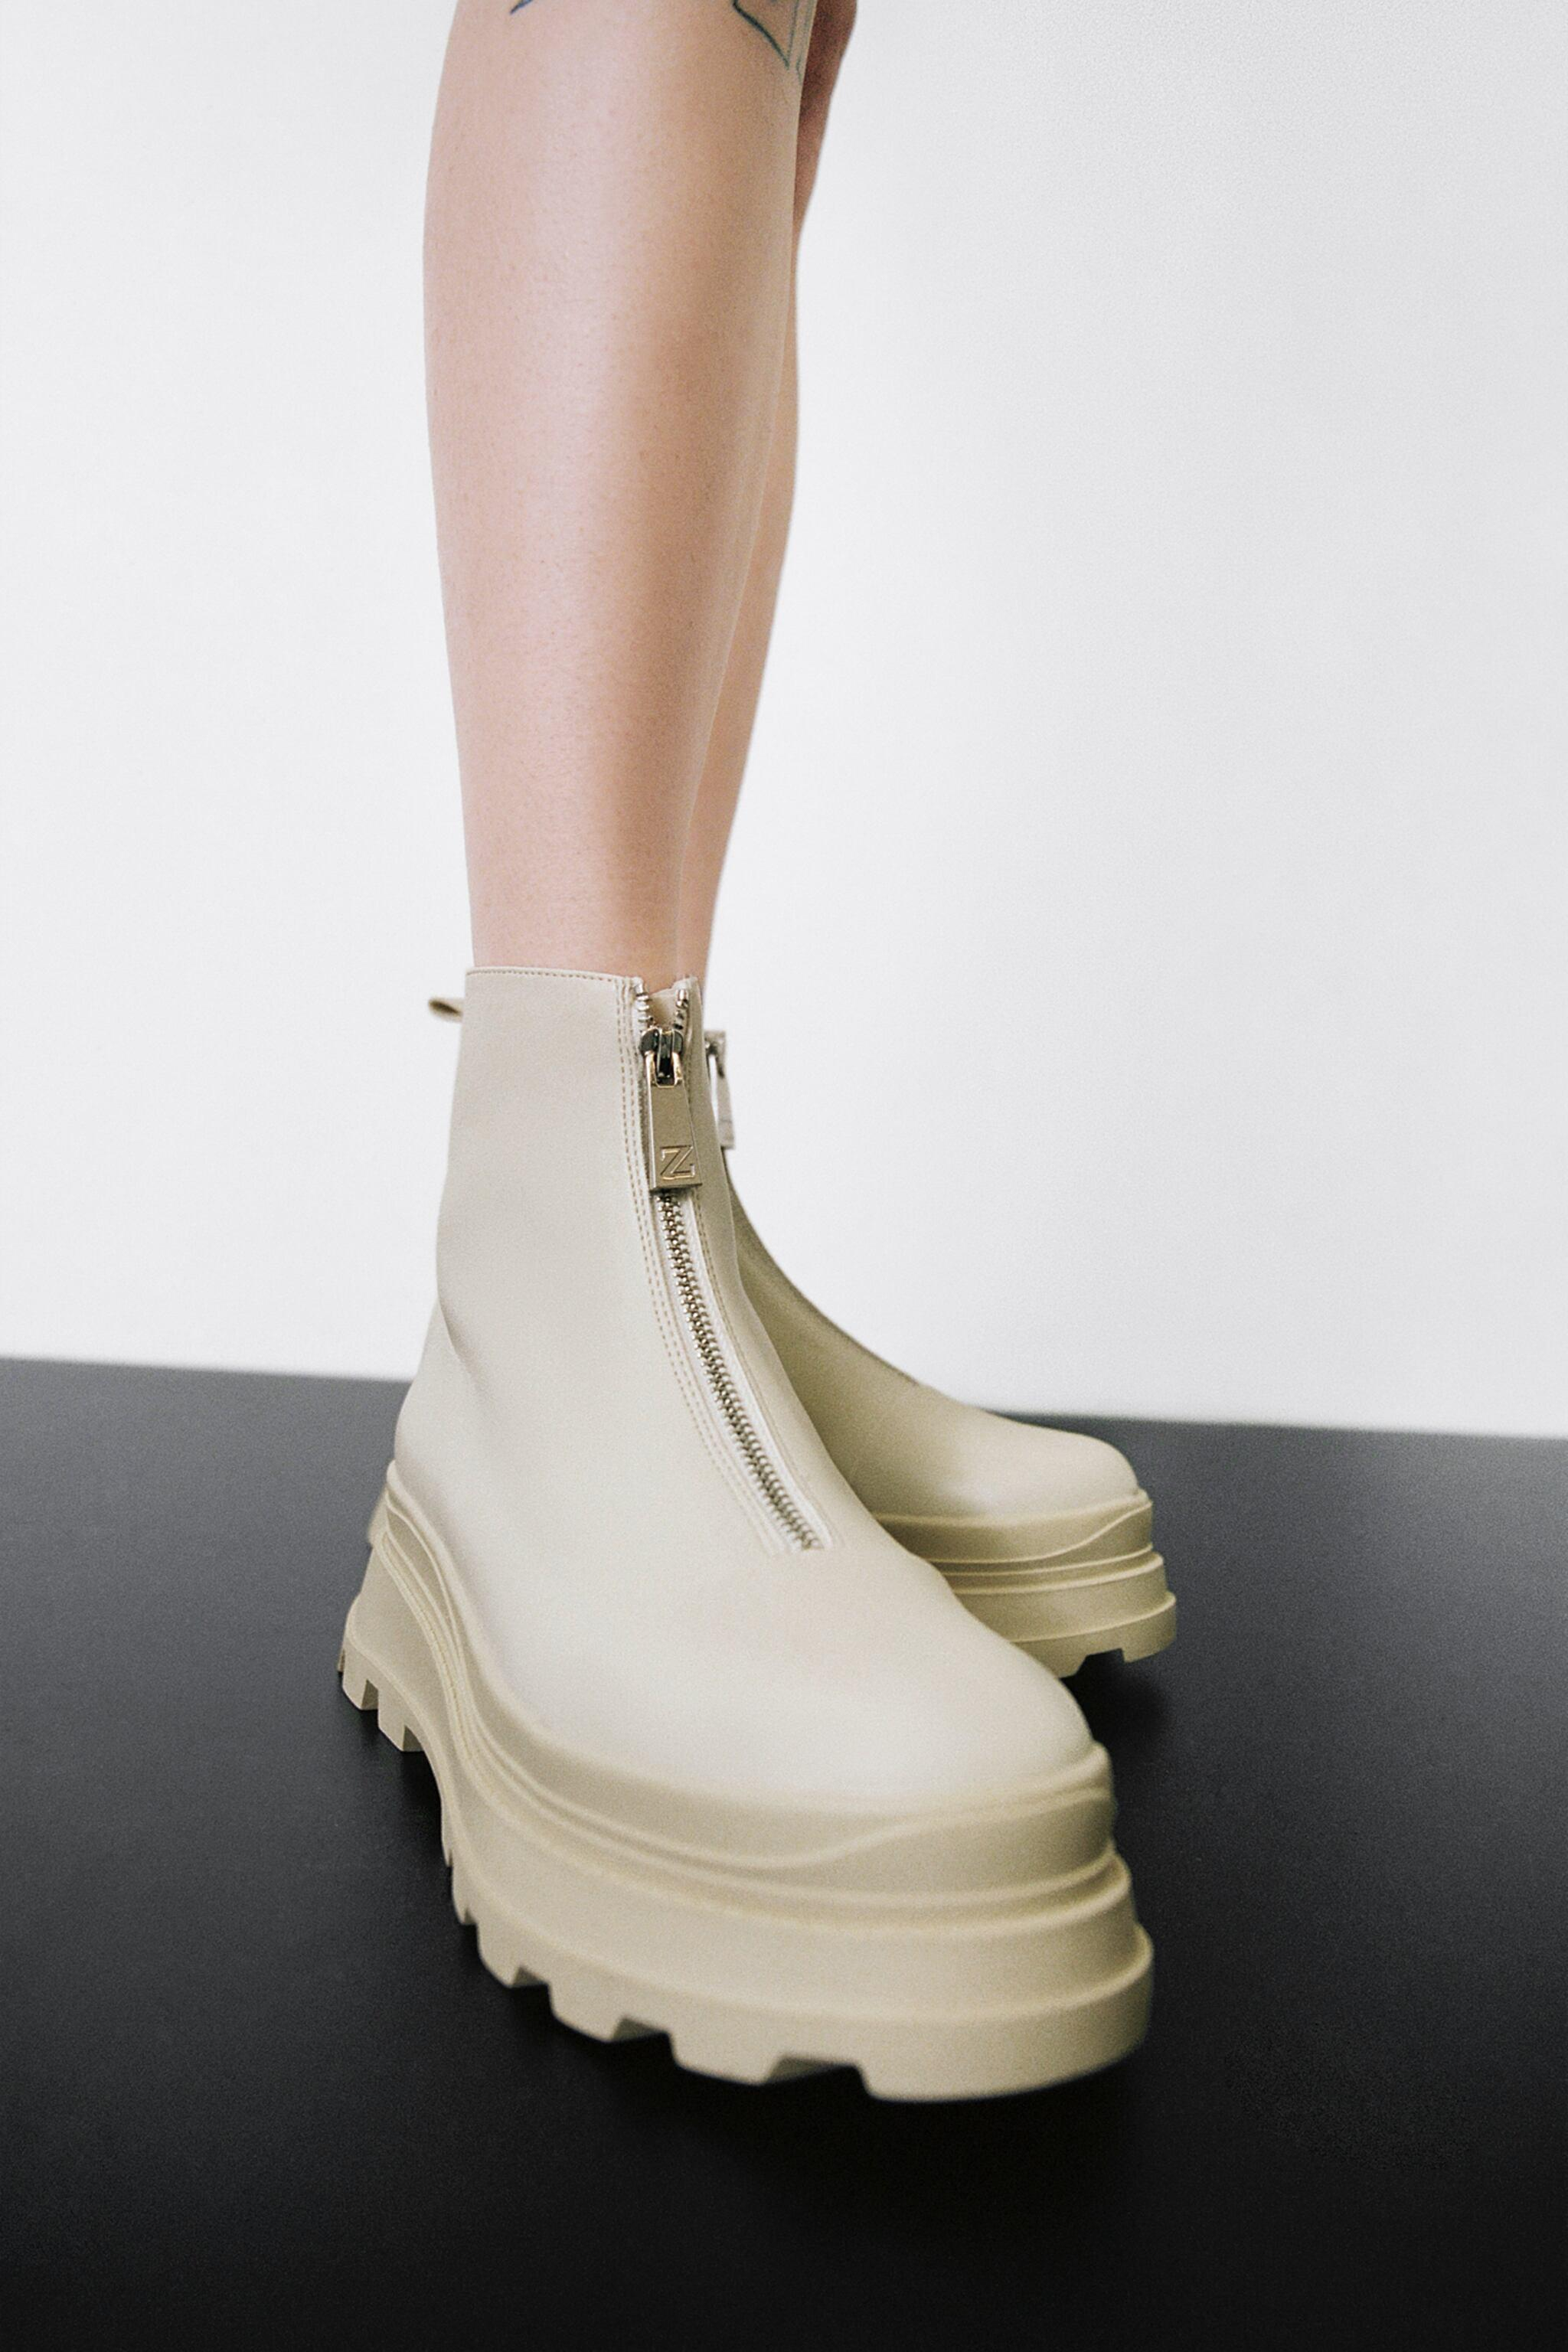 ZIPPERED LOW HEEL LUG SOLE ANKLE BOOTS